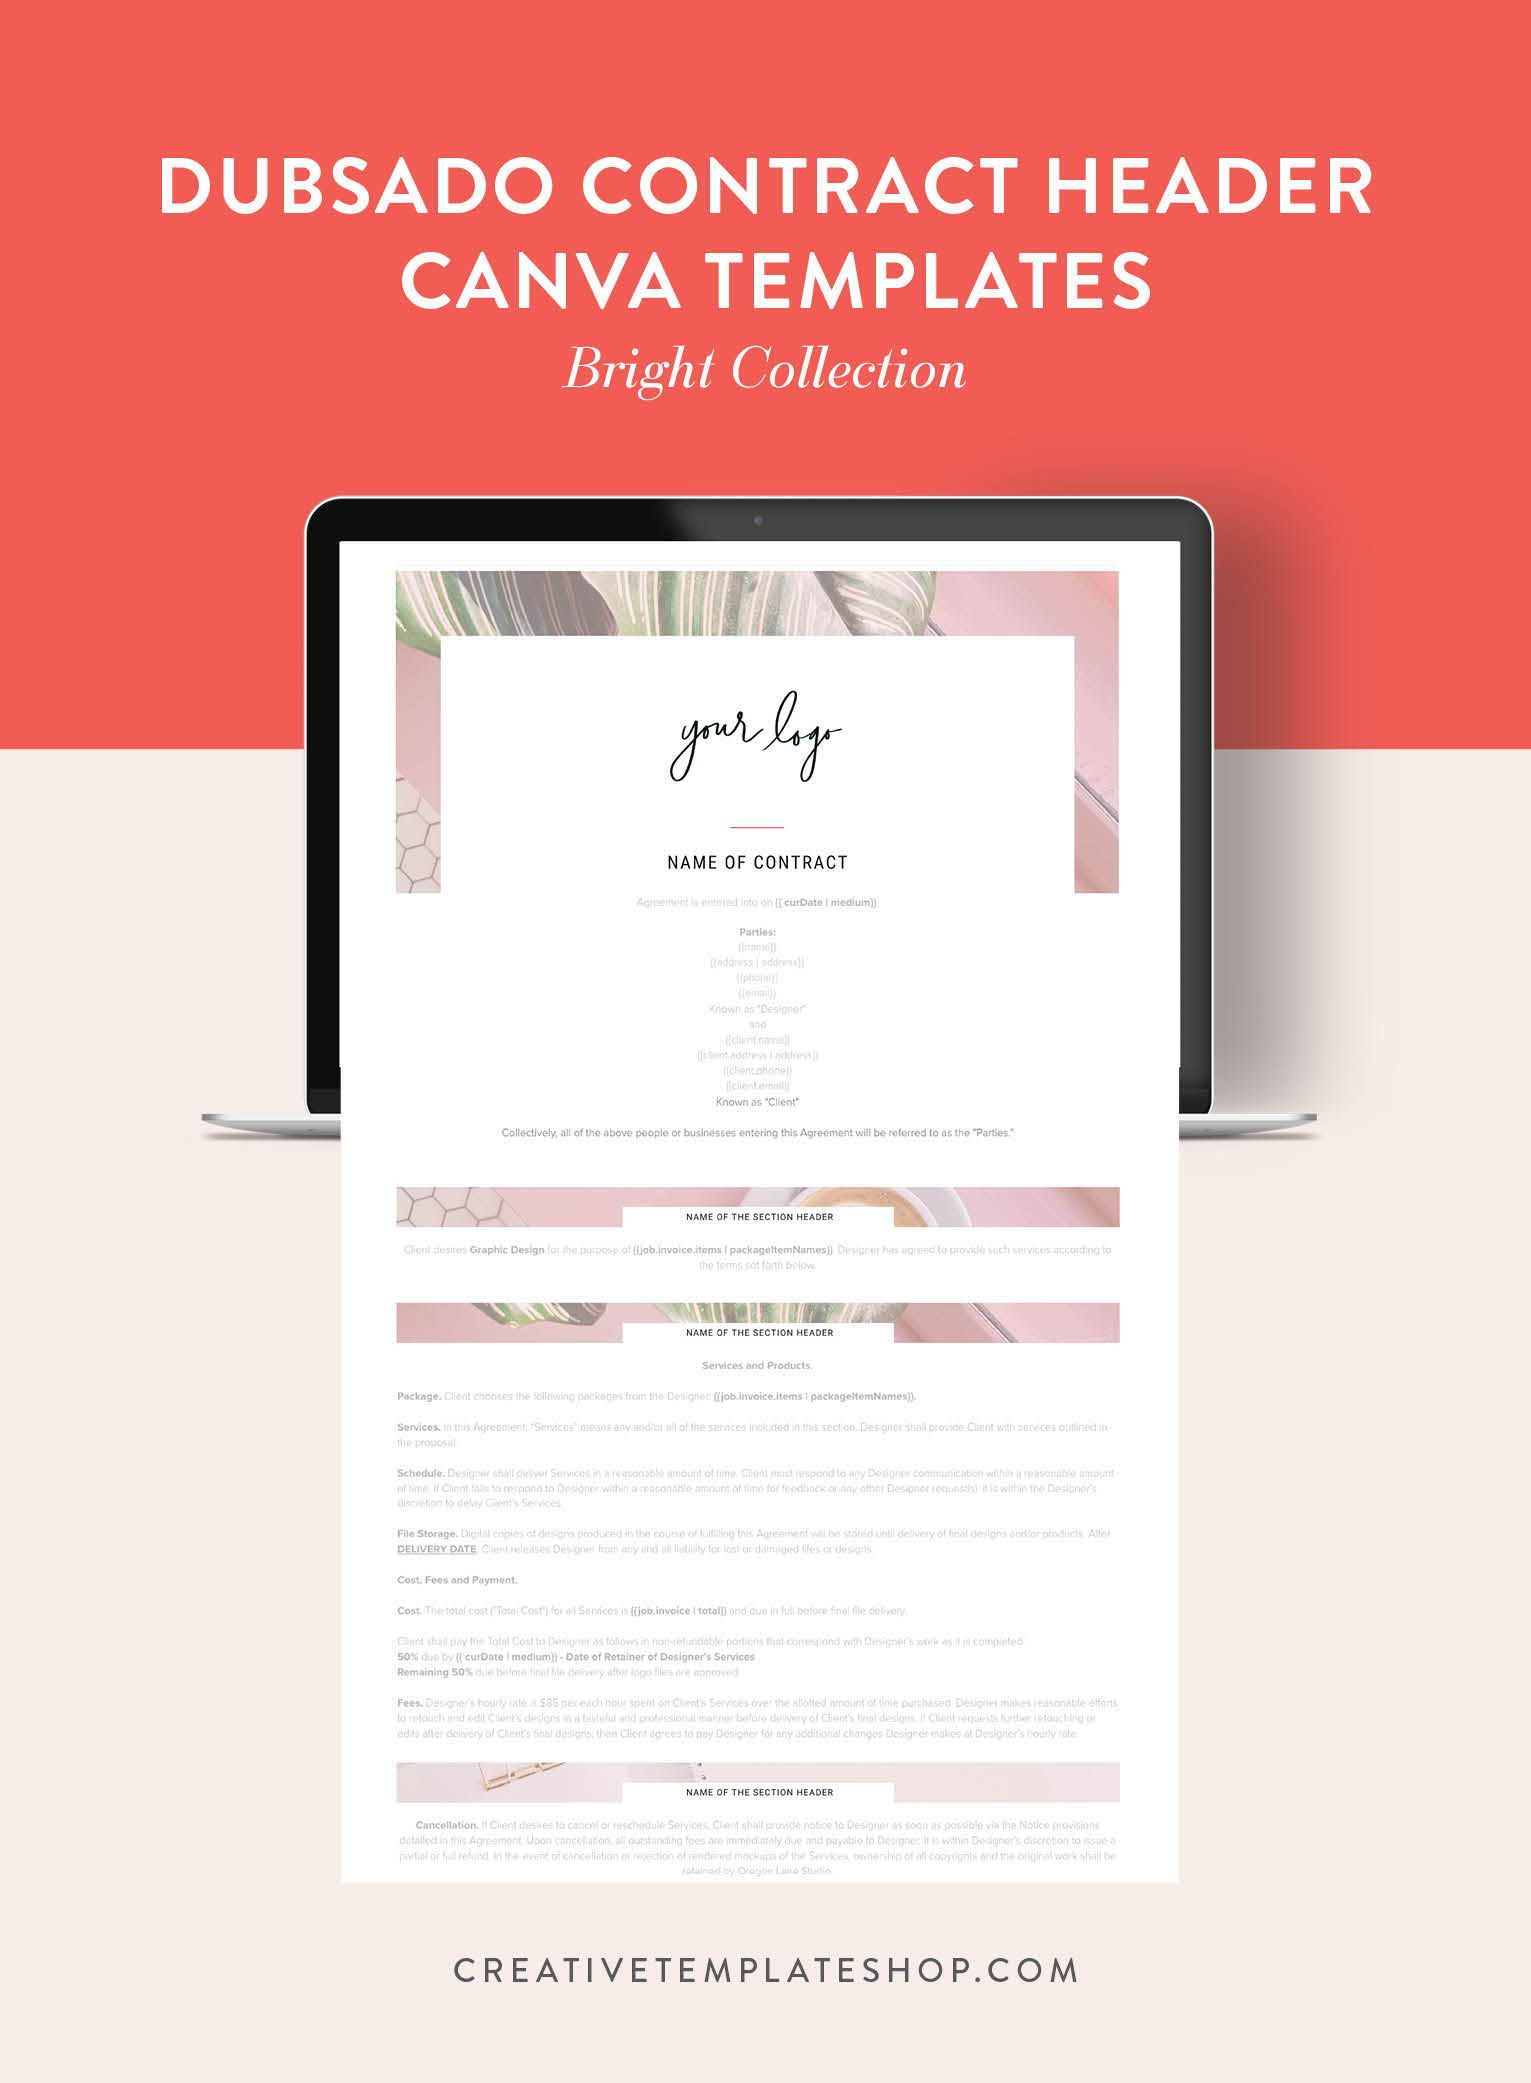 Dubsado Contract Header Templates Canva Bright Collection The Creative Template Shop Marketing Template Templates Business Design